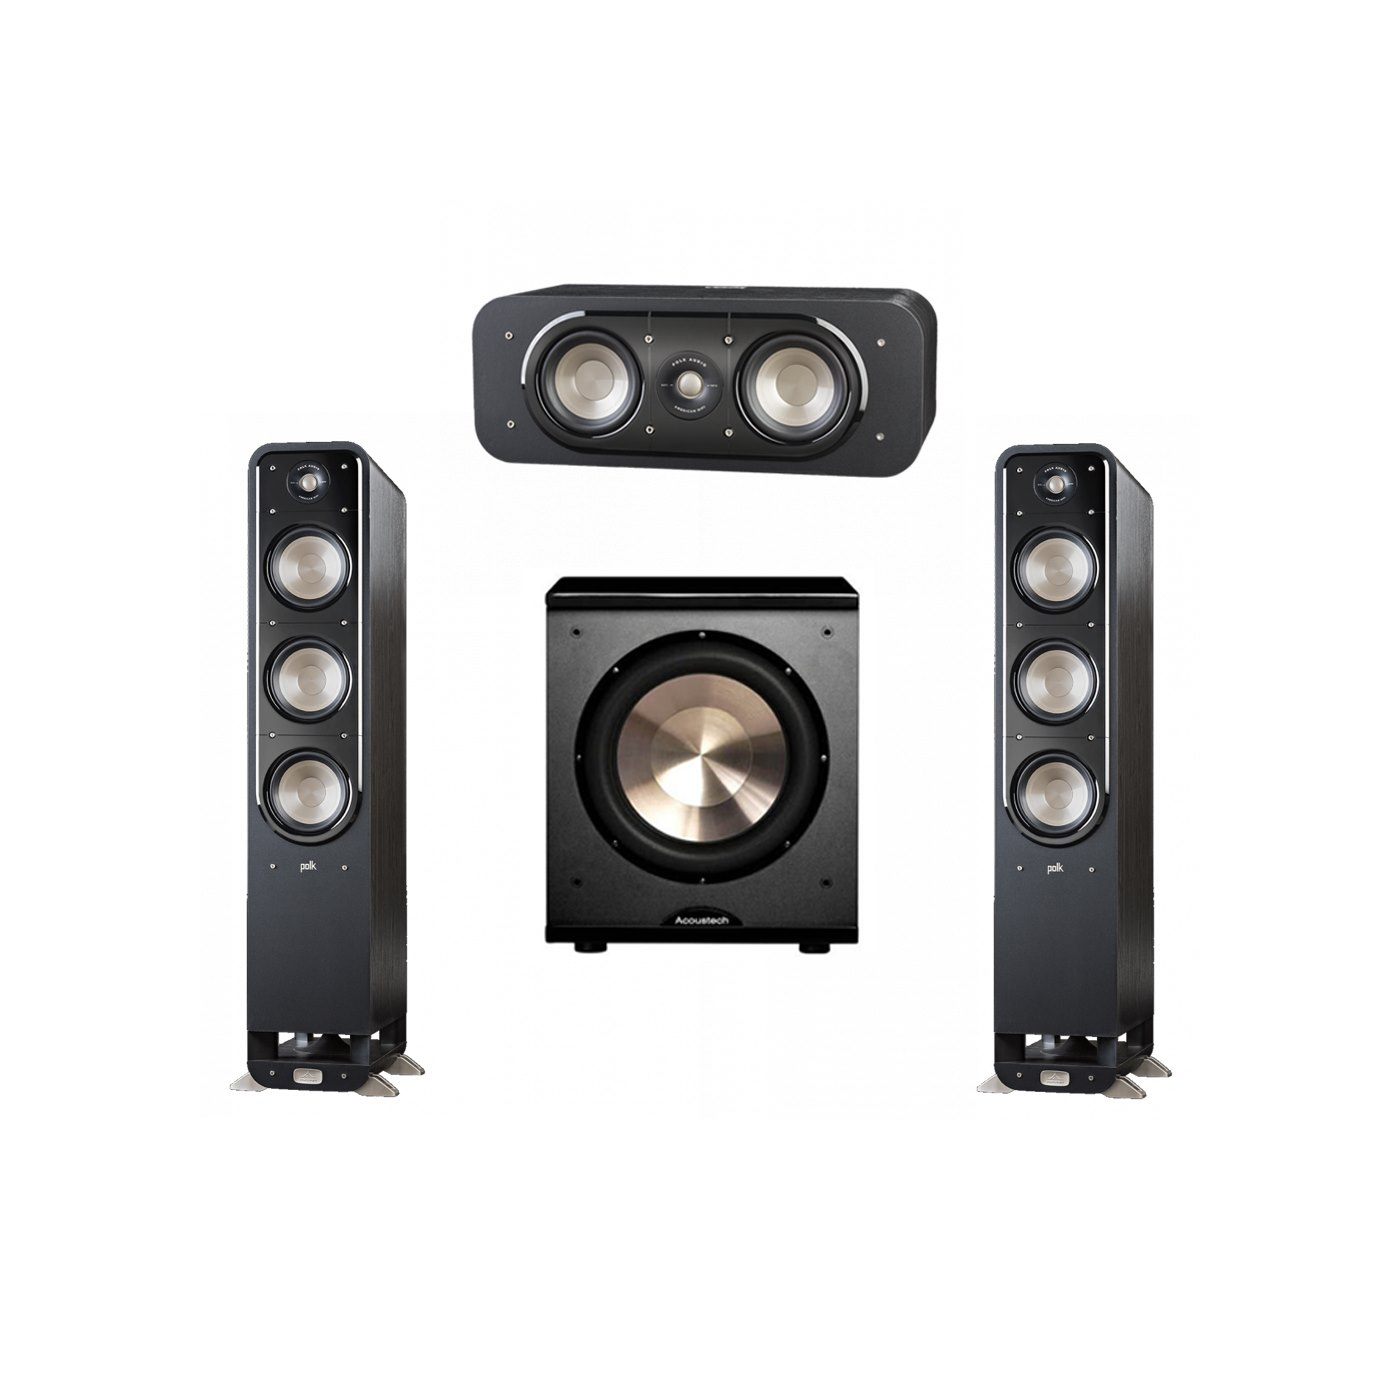 Polk Audio Signature 3.1 System with 2 S60 Tower Speaker, 1 Polk S30 Center Speaker, 1 BIC/Acoustech Platinum Series PL-200 Subwoofer